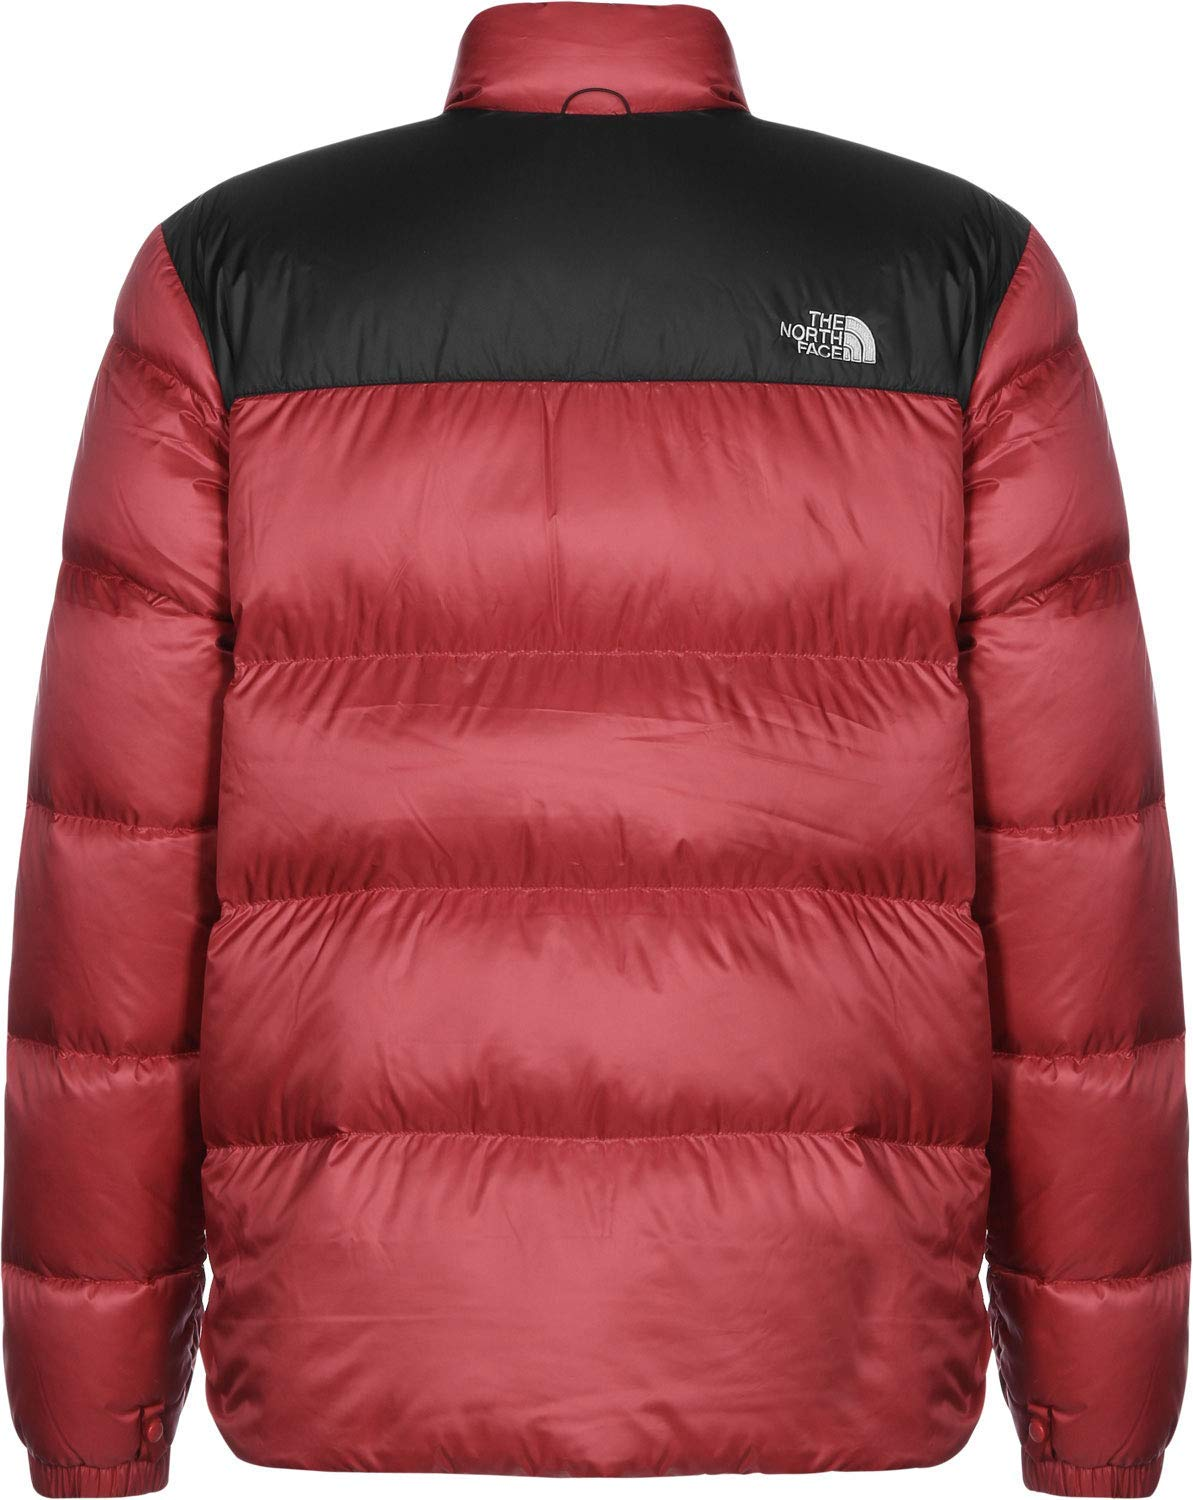 The north face. THE NORTH FACE GIACCA UOMO 1996 RETRO NUPTSE 42359a2c2250